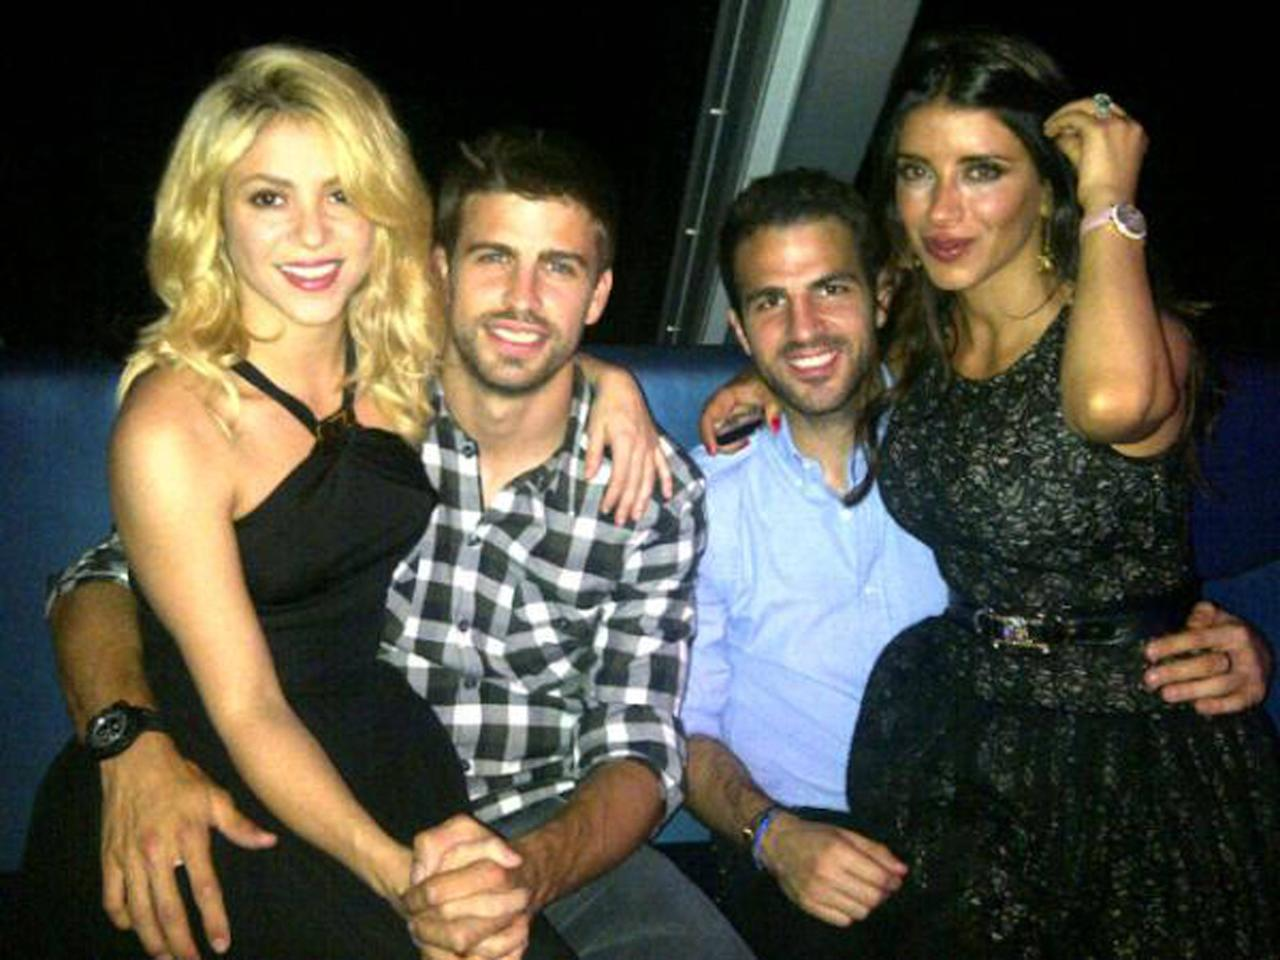 Gerard Pique posed this image on Twitter of himself with Shakira, Cesc F�bregas and Daniella Semaan  with the caption 'Enjoying a great night!'  Credit: Gerard Pique/Twitter Supplied by WENN.com  (WENN does not claim any Copyright or License in the attached material. Any downloading fees charged by WENN are for WENN's services only, and do not, nor are they intended to, convey to the user any ownership of Copyright or License in the material. By publishing this material, the user expressly agrees to indemnify and to hold WENN harmless from any claims, demands, or causes of action arising out of or connected in any way with user's publication of the material.)